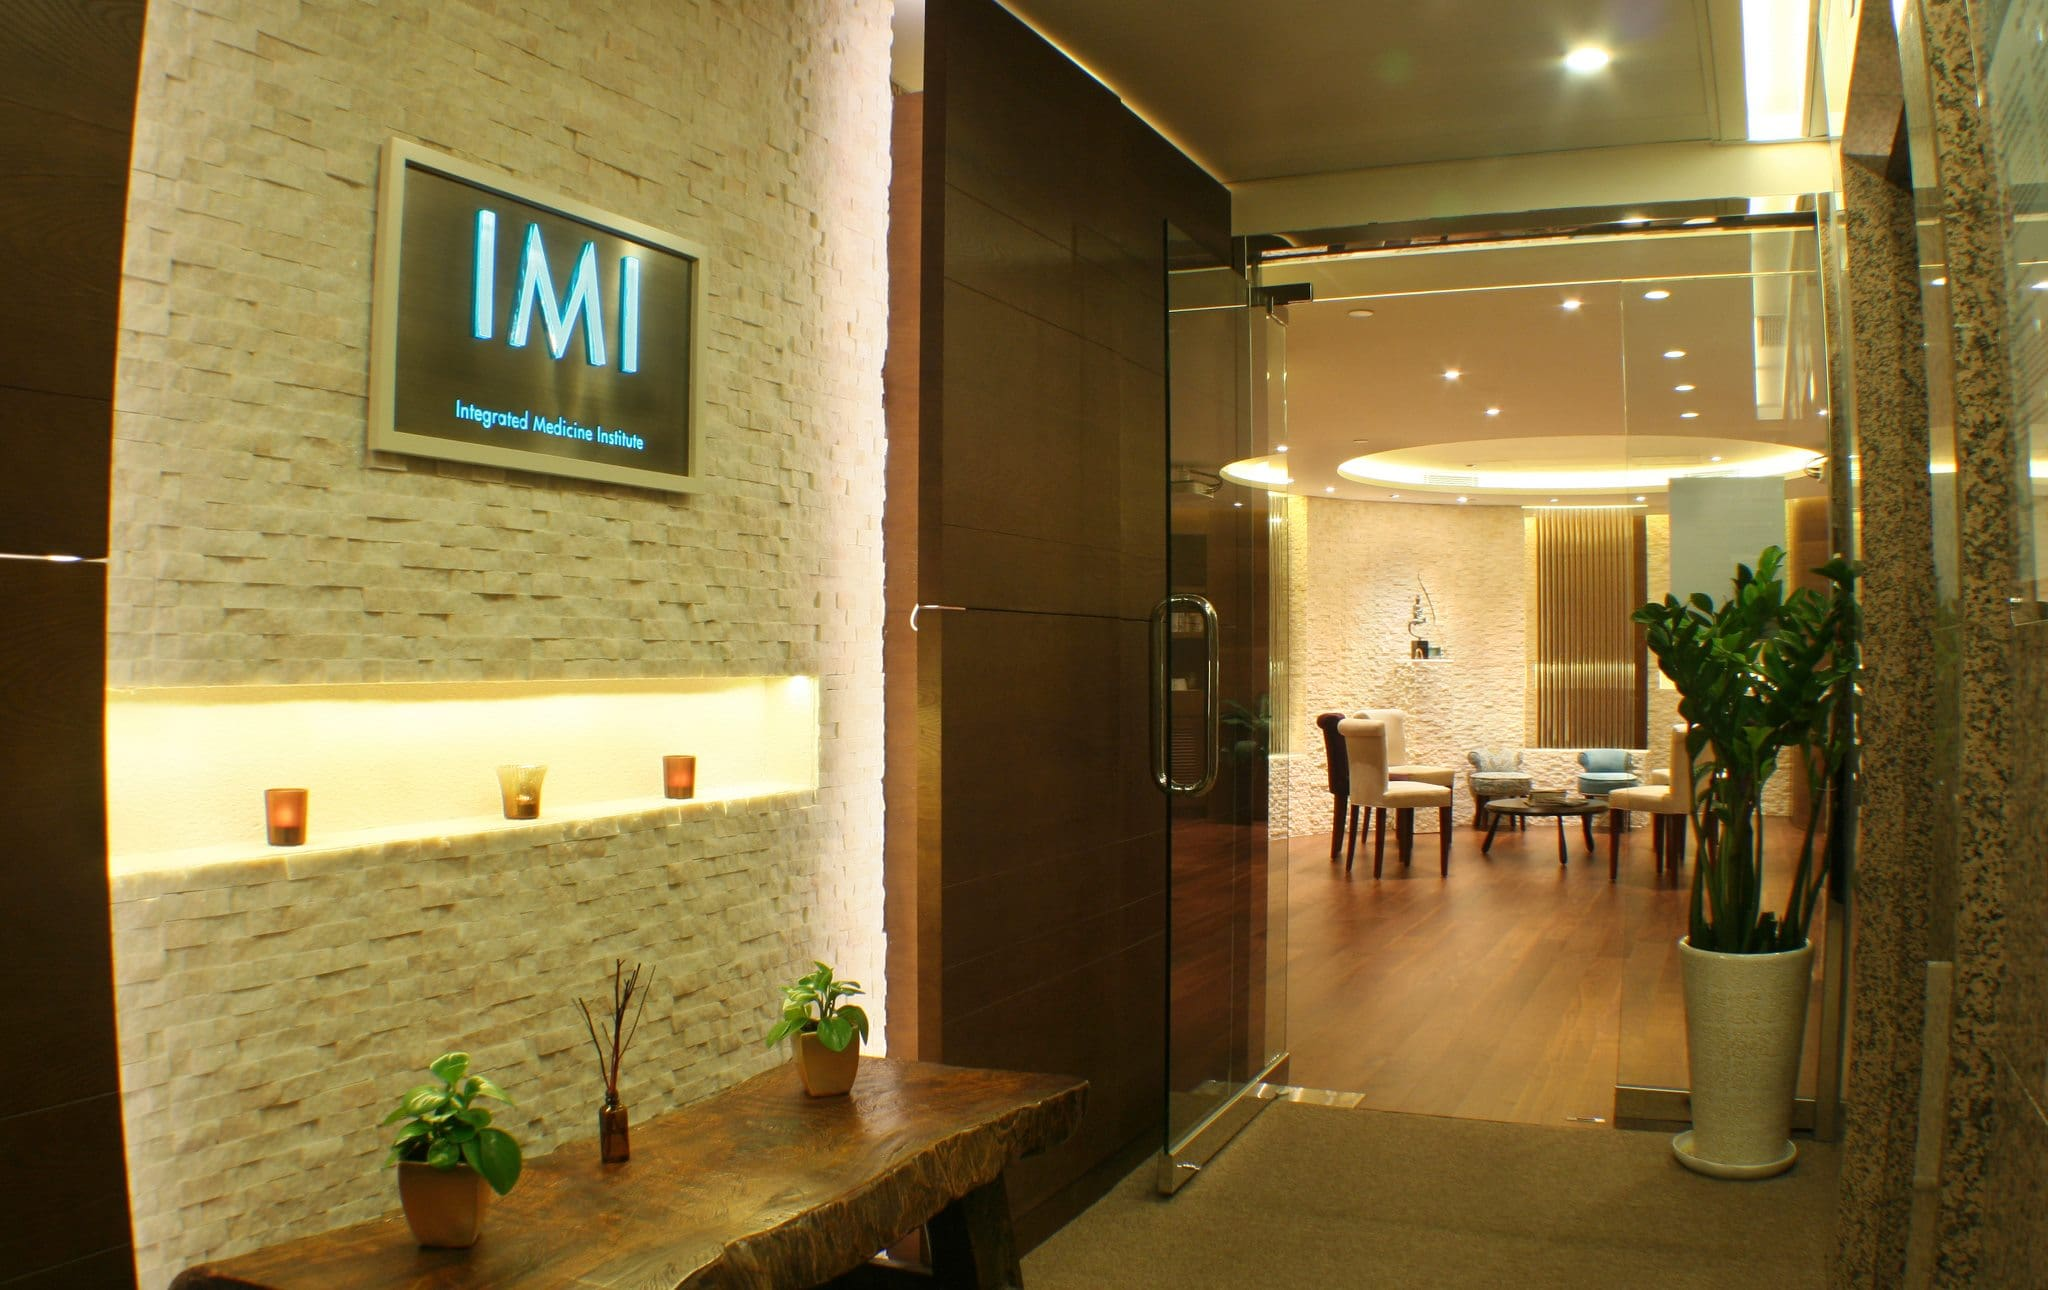 IMI hong kong integrated medicine naturopathy, natural medicine